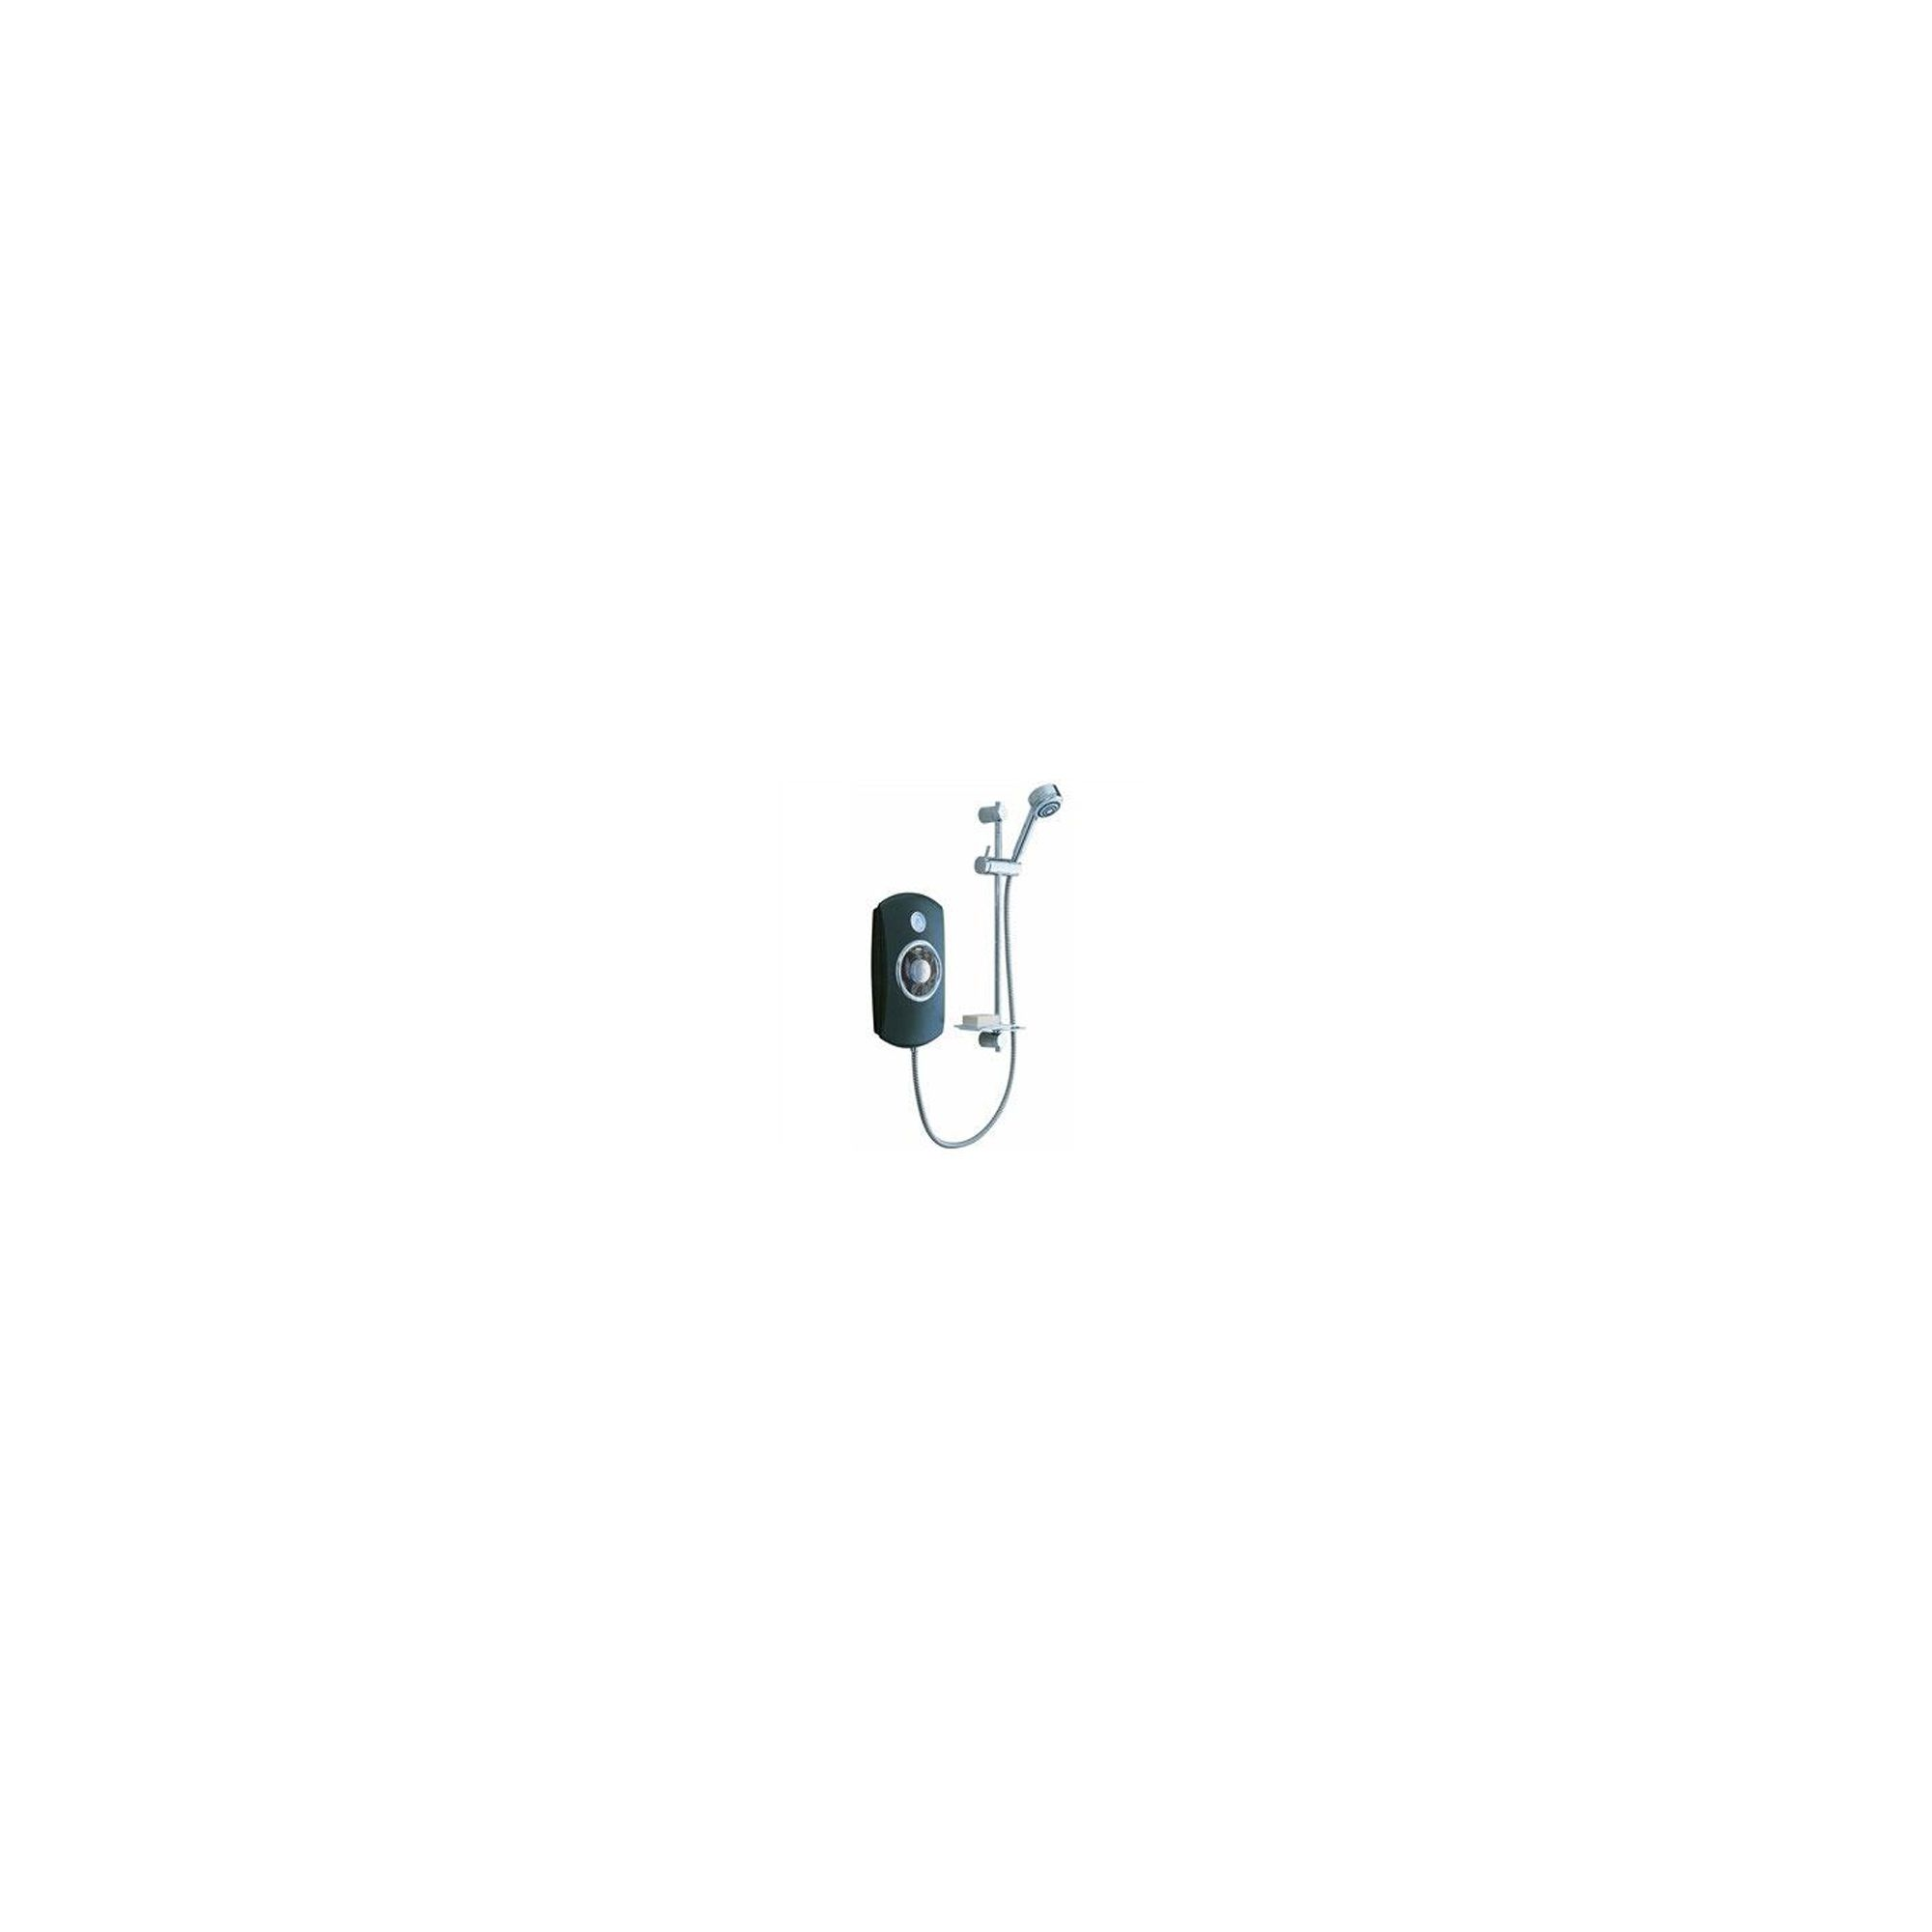 Mira Orbis 9.8 kW Electric Shower with 4 Spray Showerhead, Black at Tesco Direct